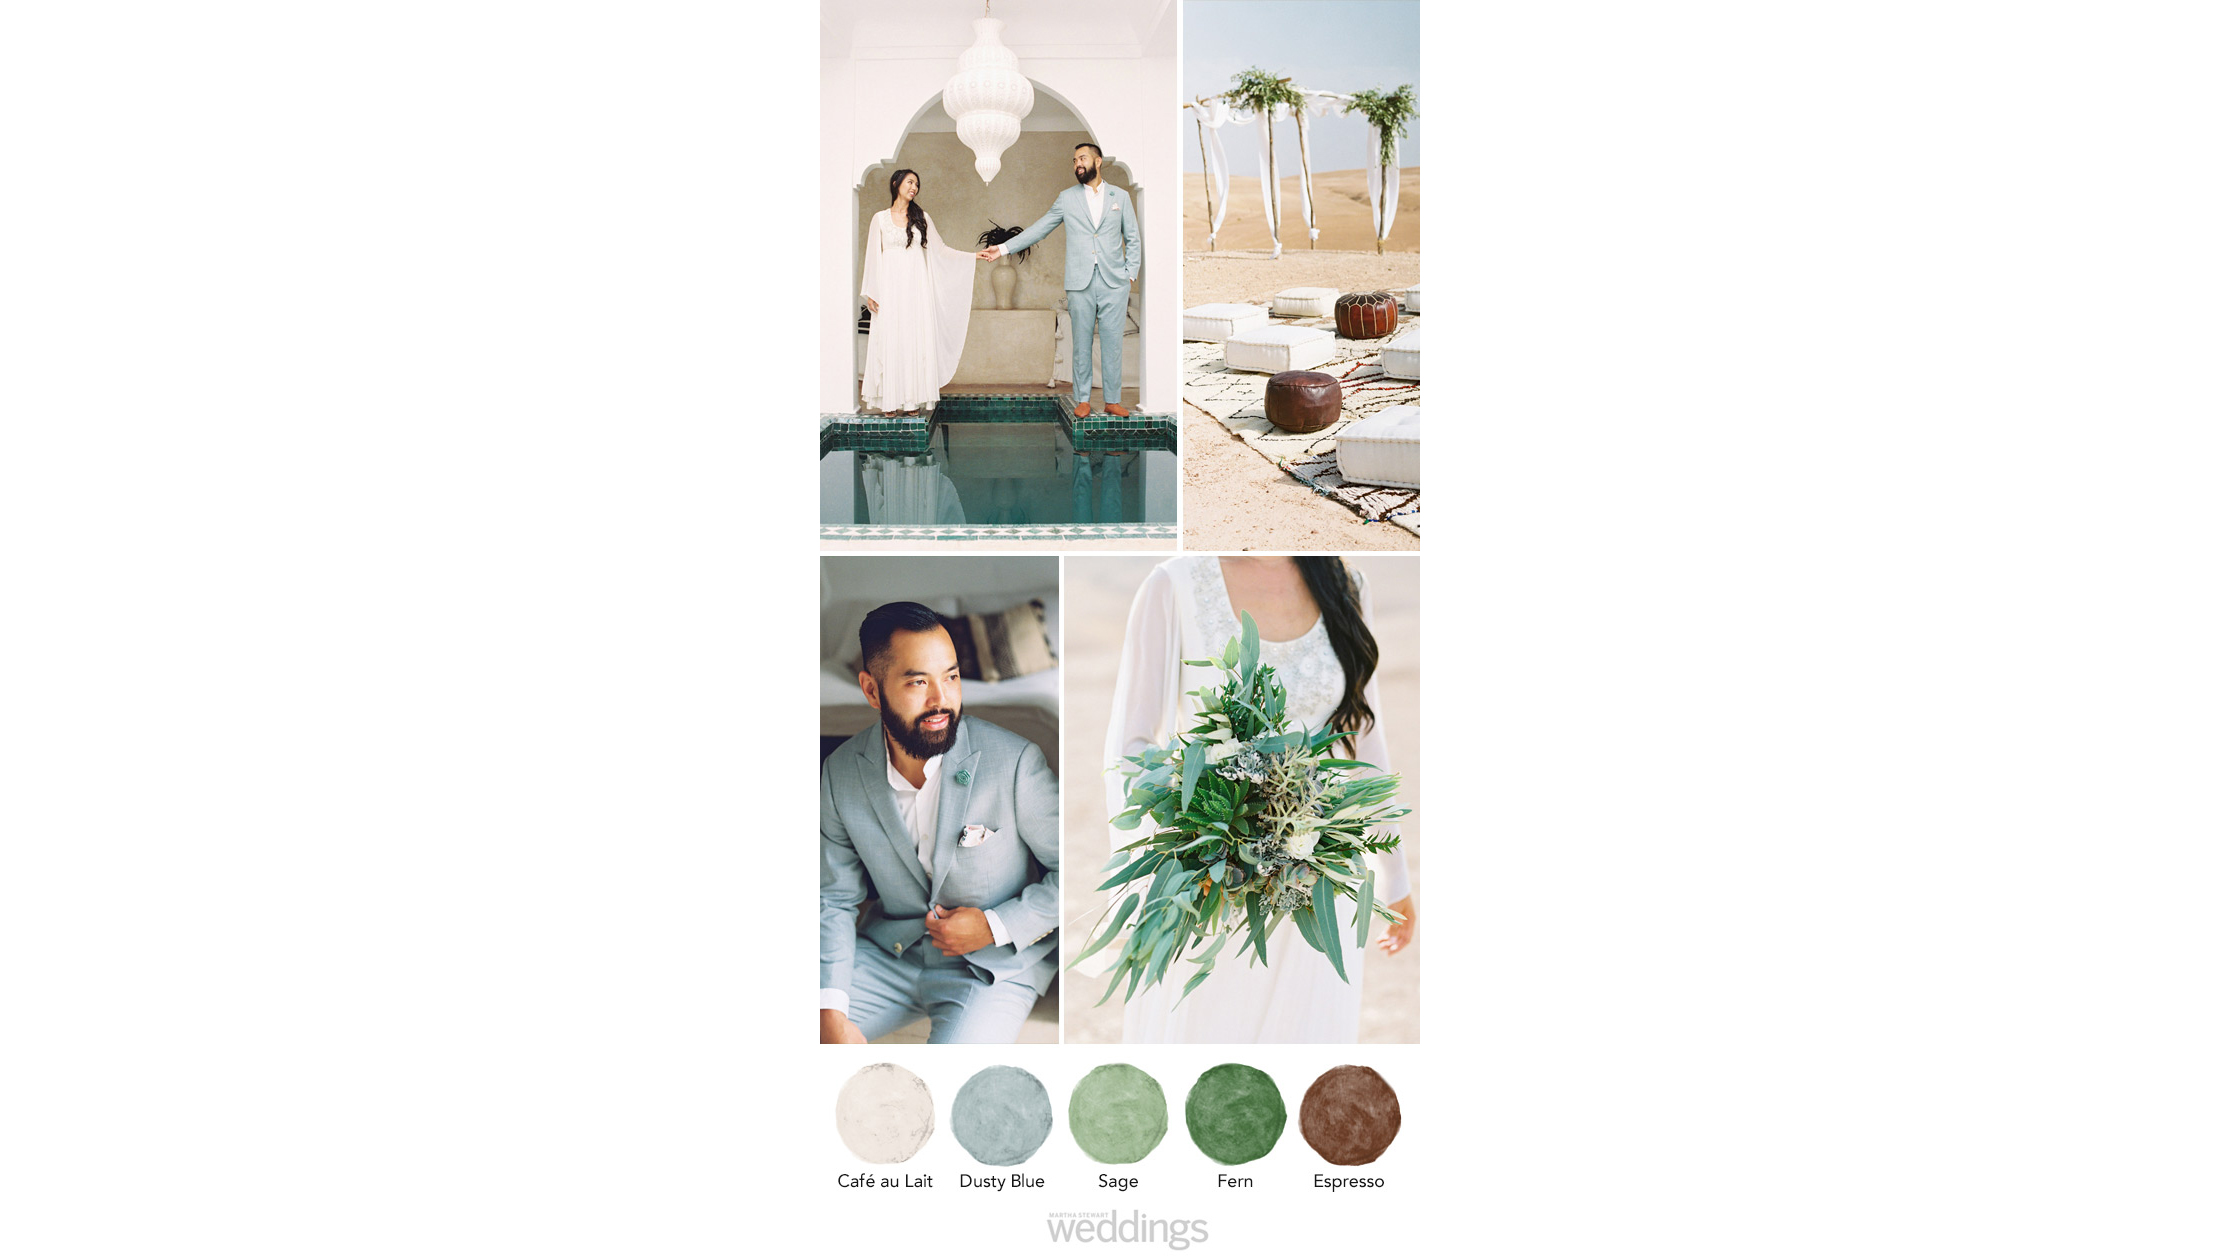 dessert hues wedding color palette ideas